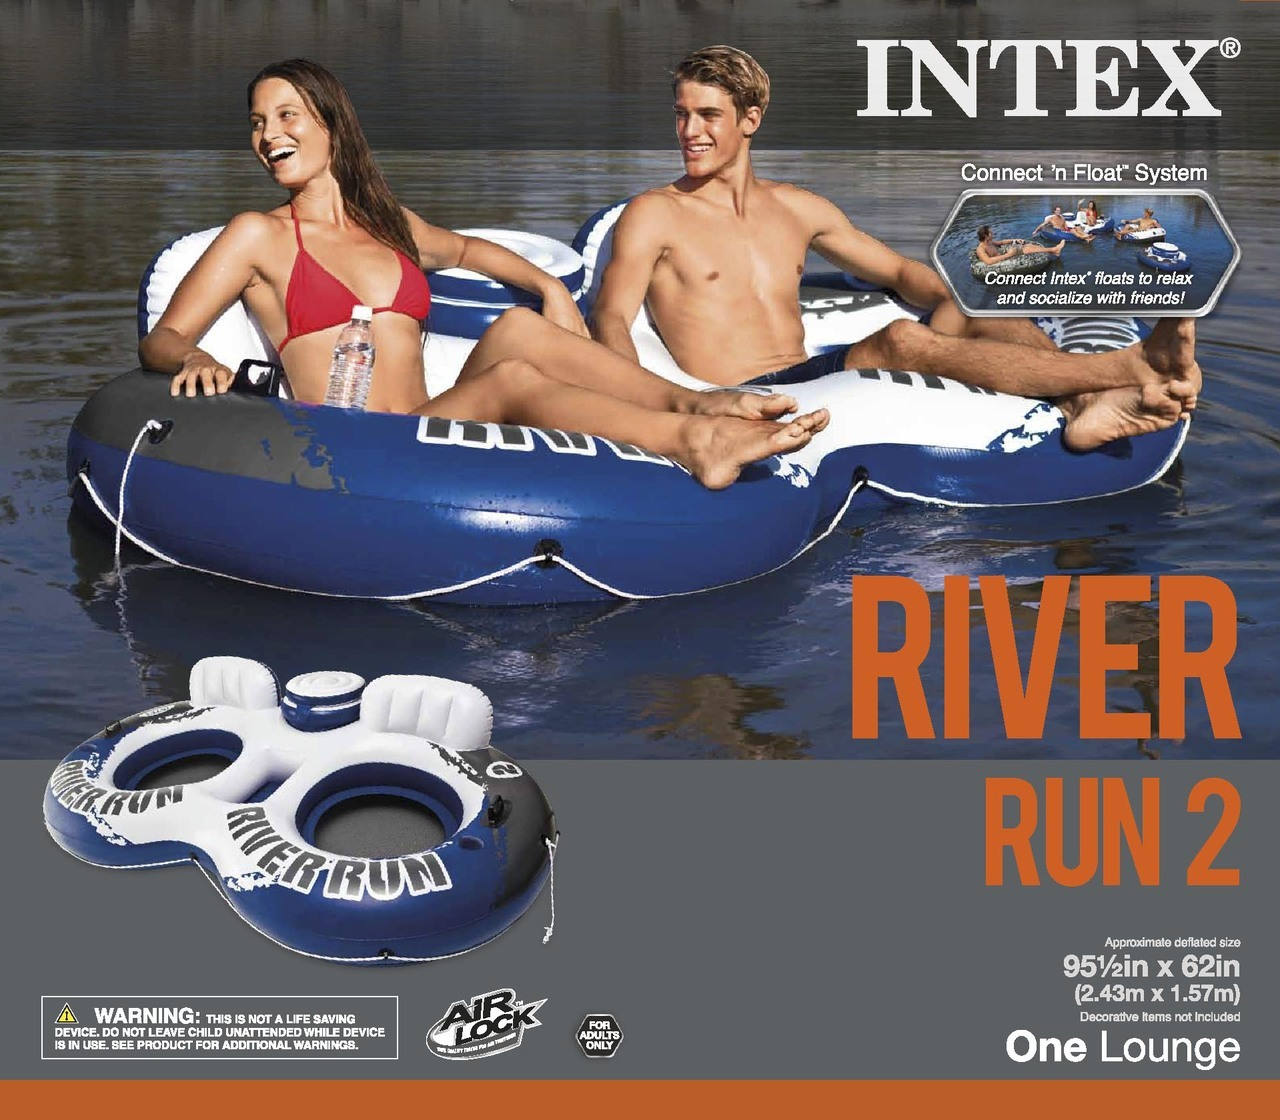 58837 Intex River Run II